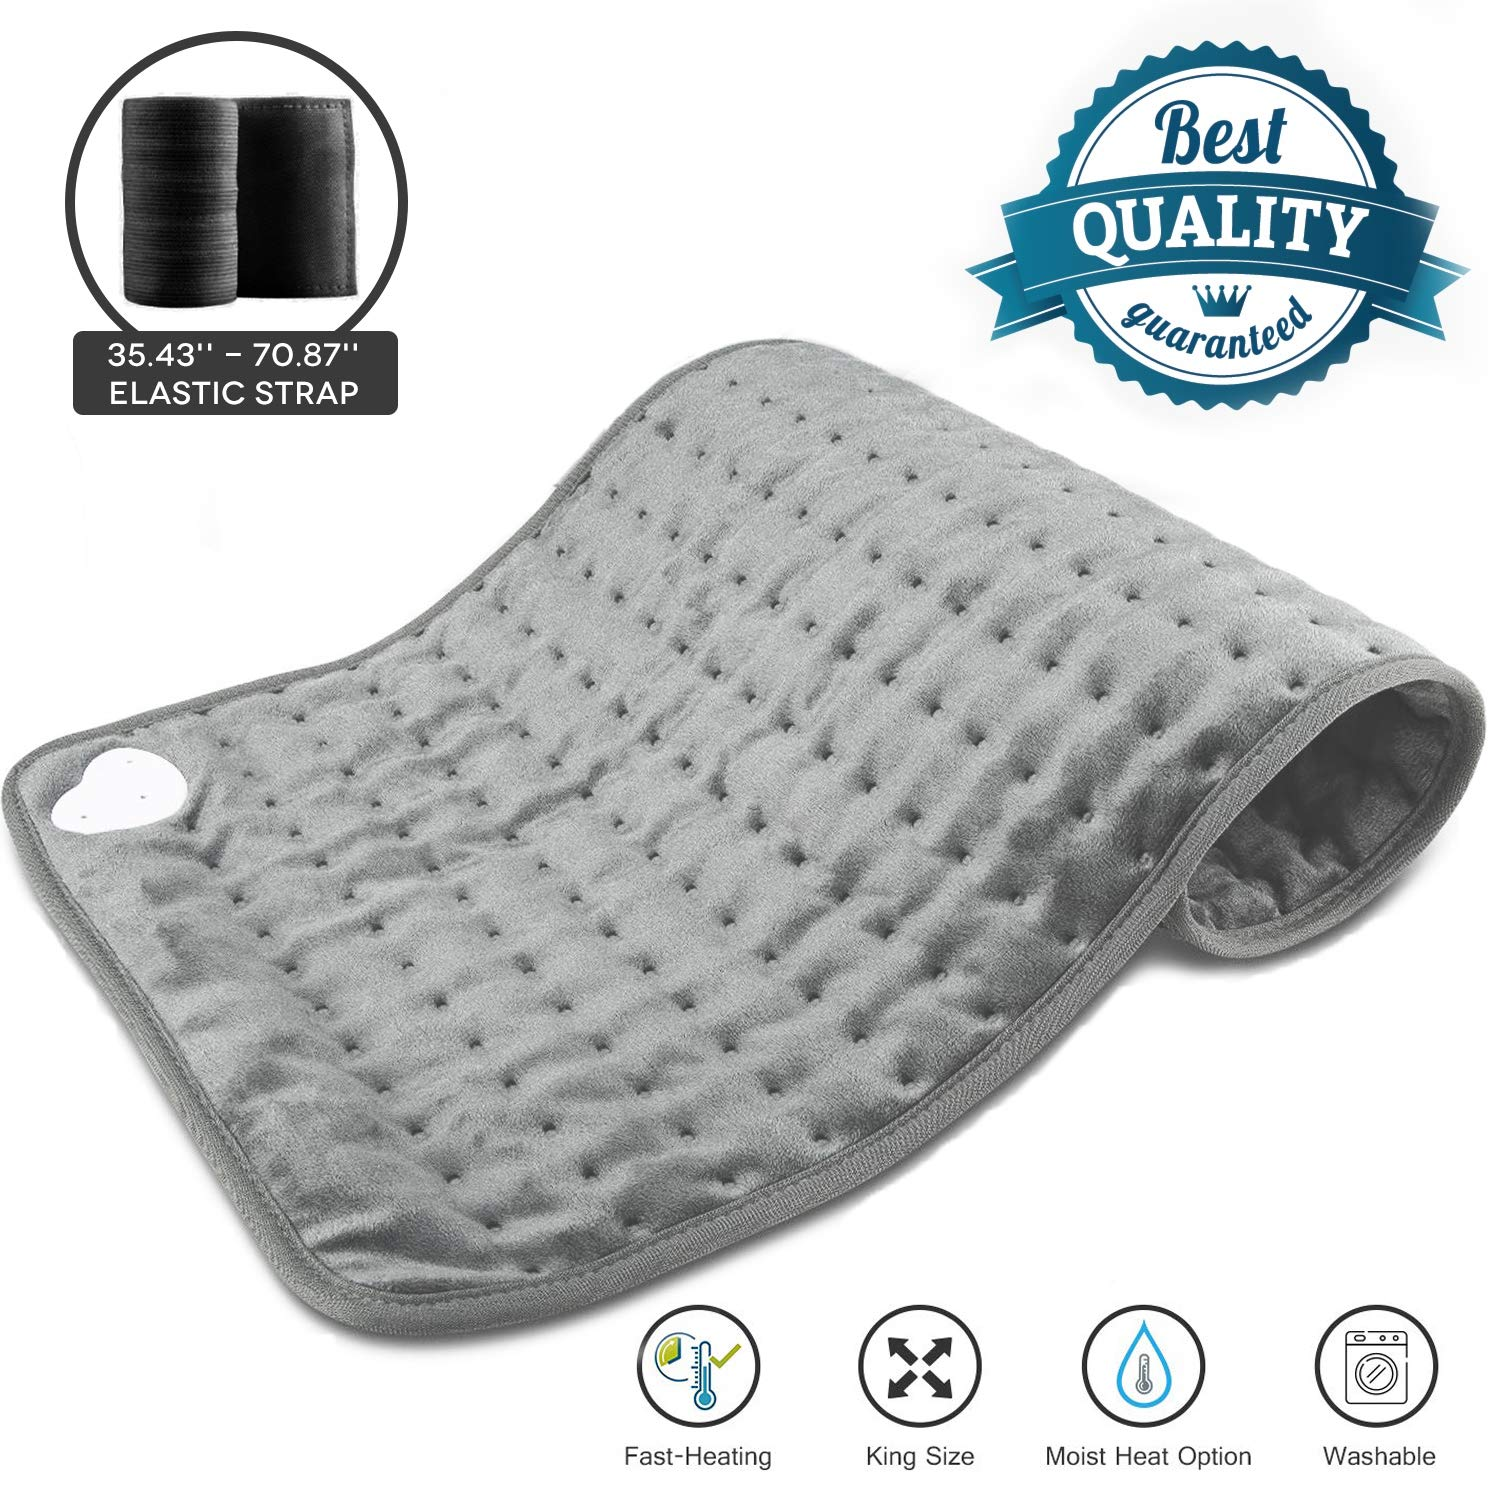 Heating Pad,24''x12'' Large Soft Electric Heating Pad for Neck Back Abdomen Pain Relief,Dry Moist Heat Therapy Option,6 Heat Settings,4 Timer Settings,1 Elastic Strap,Machine Washable,Auto Shut Off by lesotc